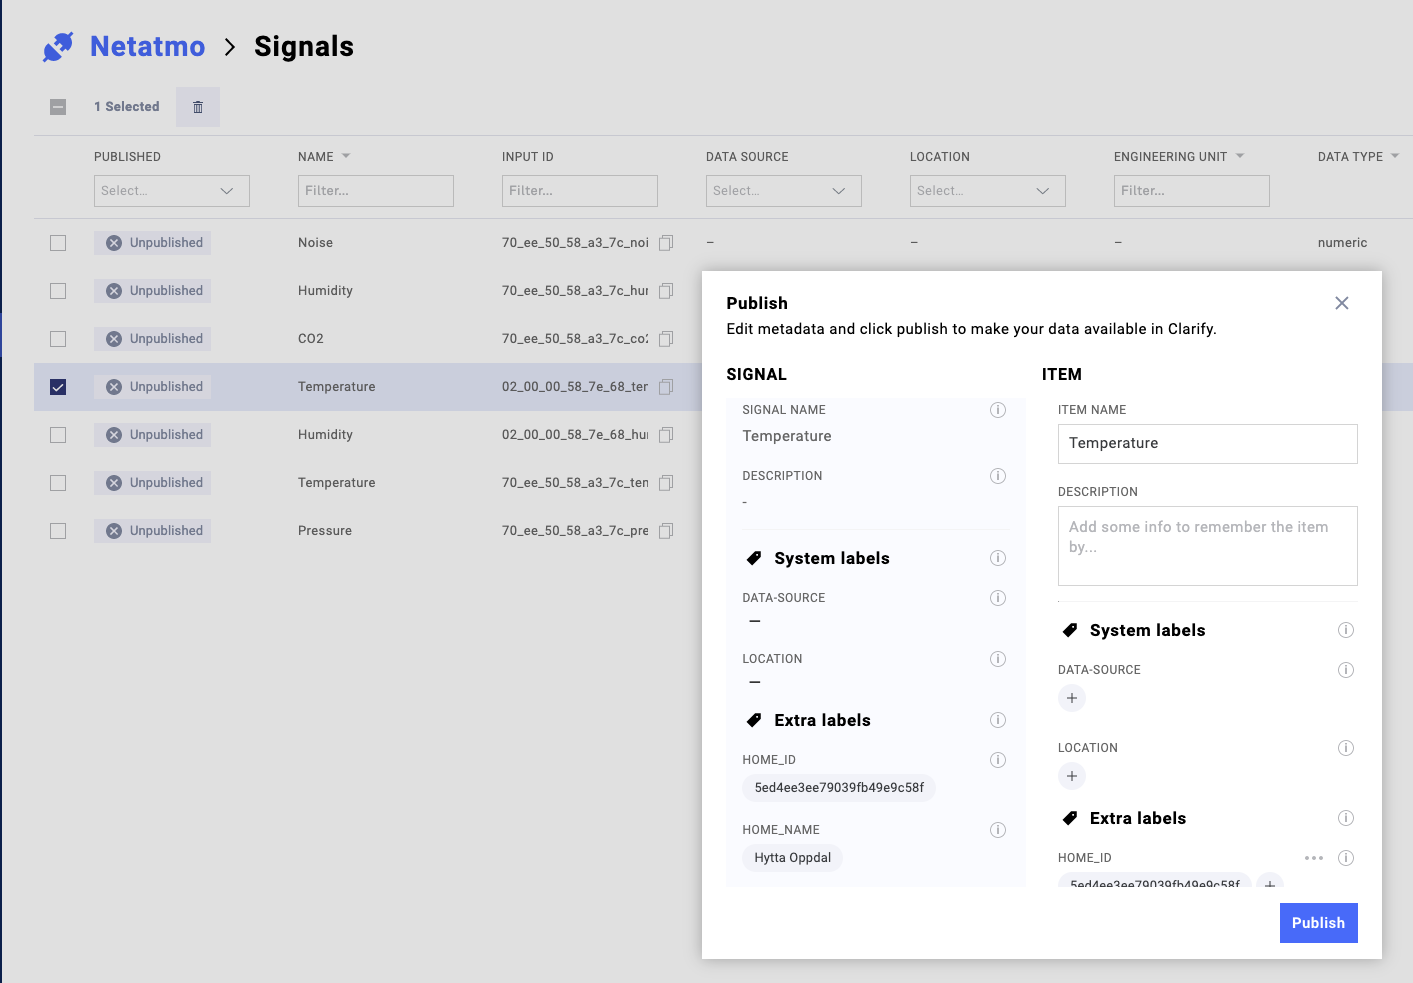 Publish the signal (create an item) to make it visible in the UI.